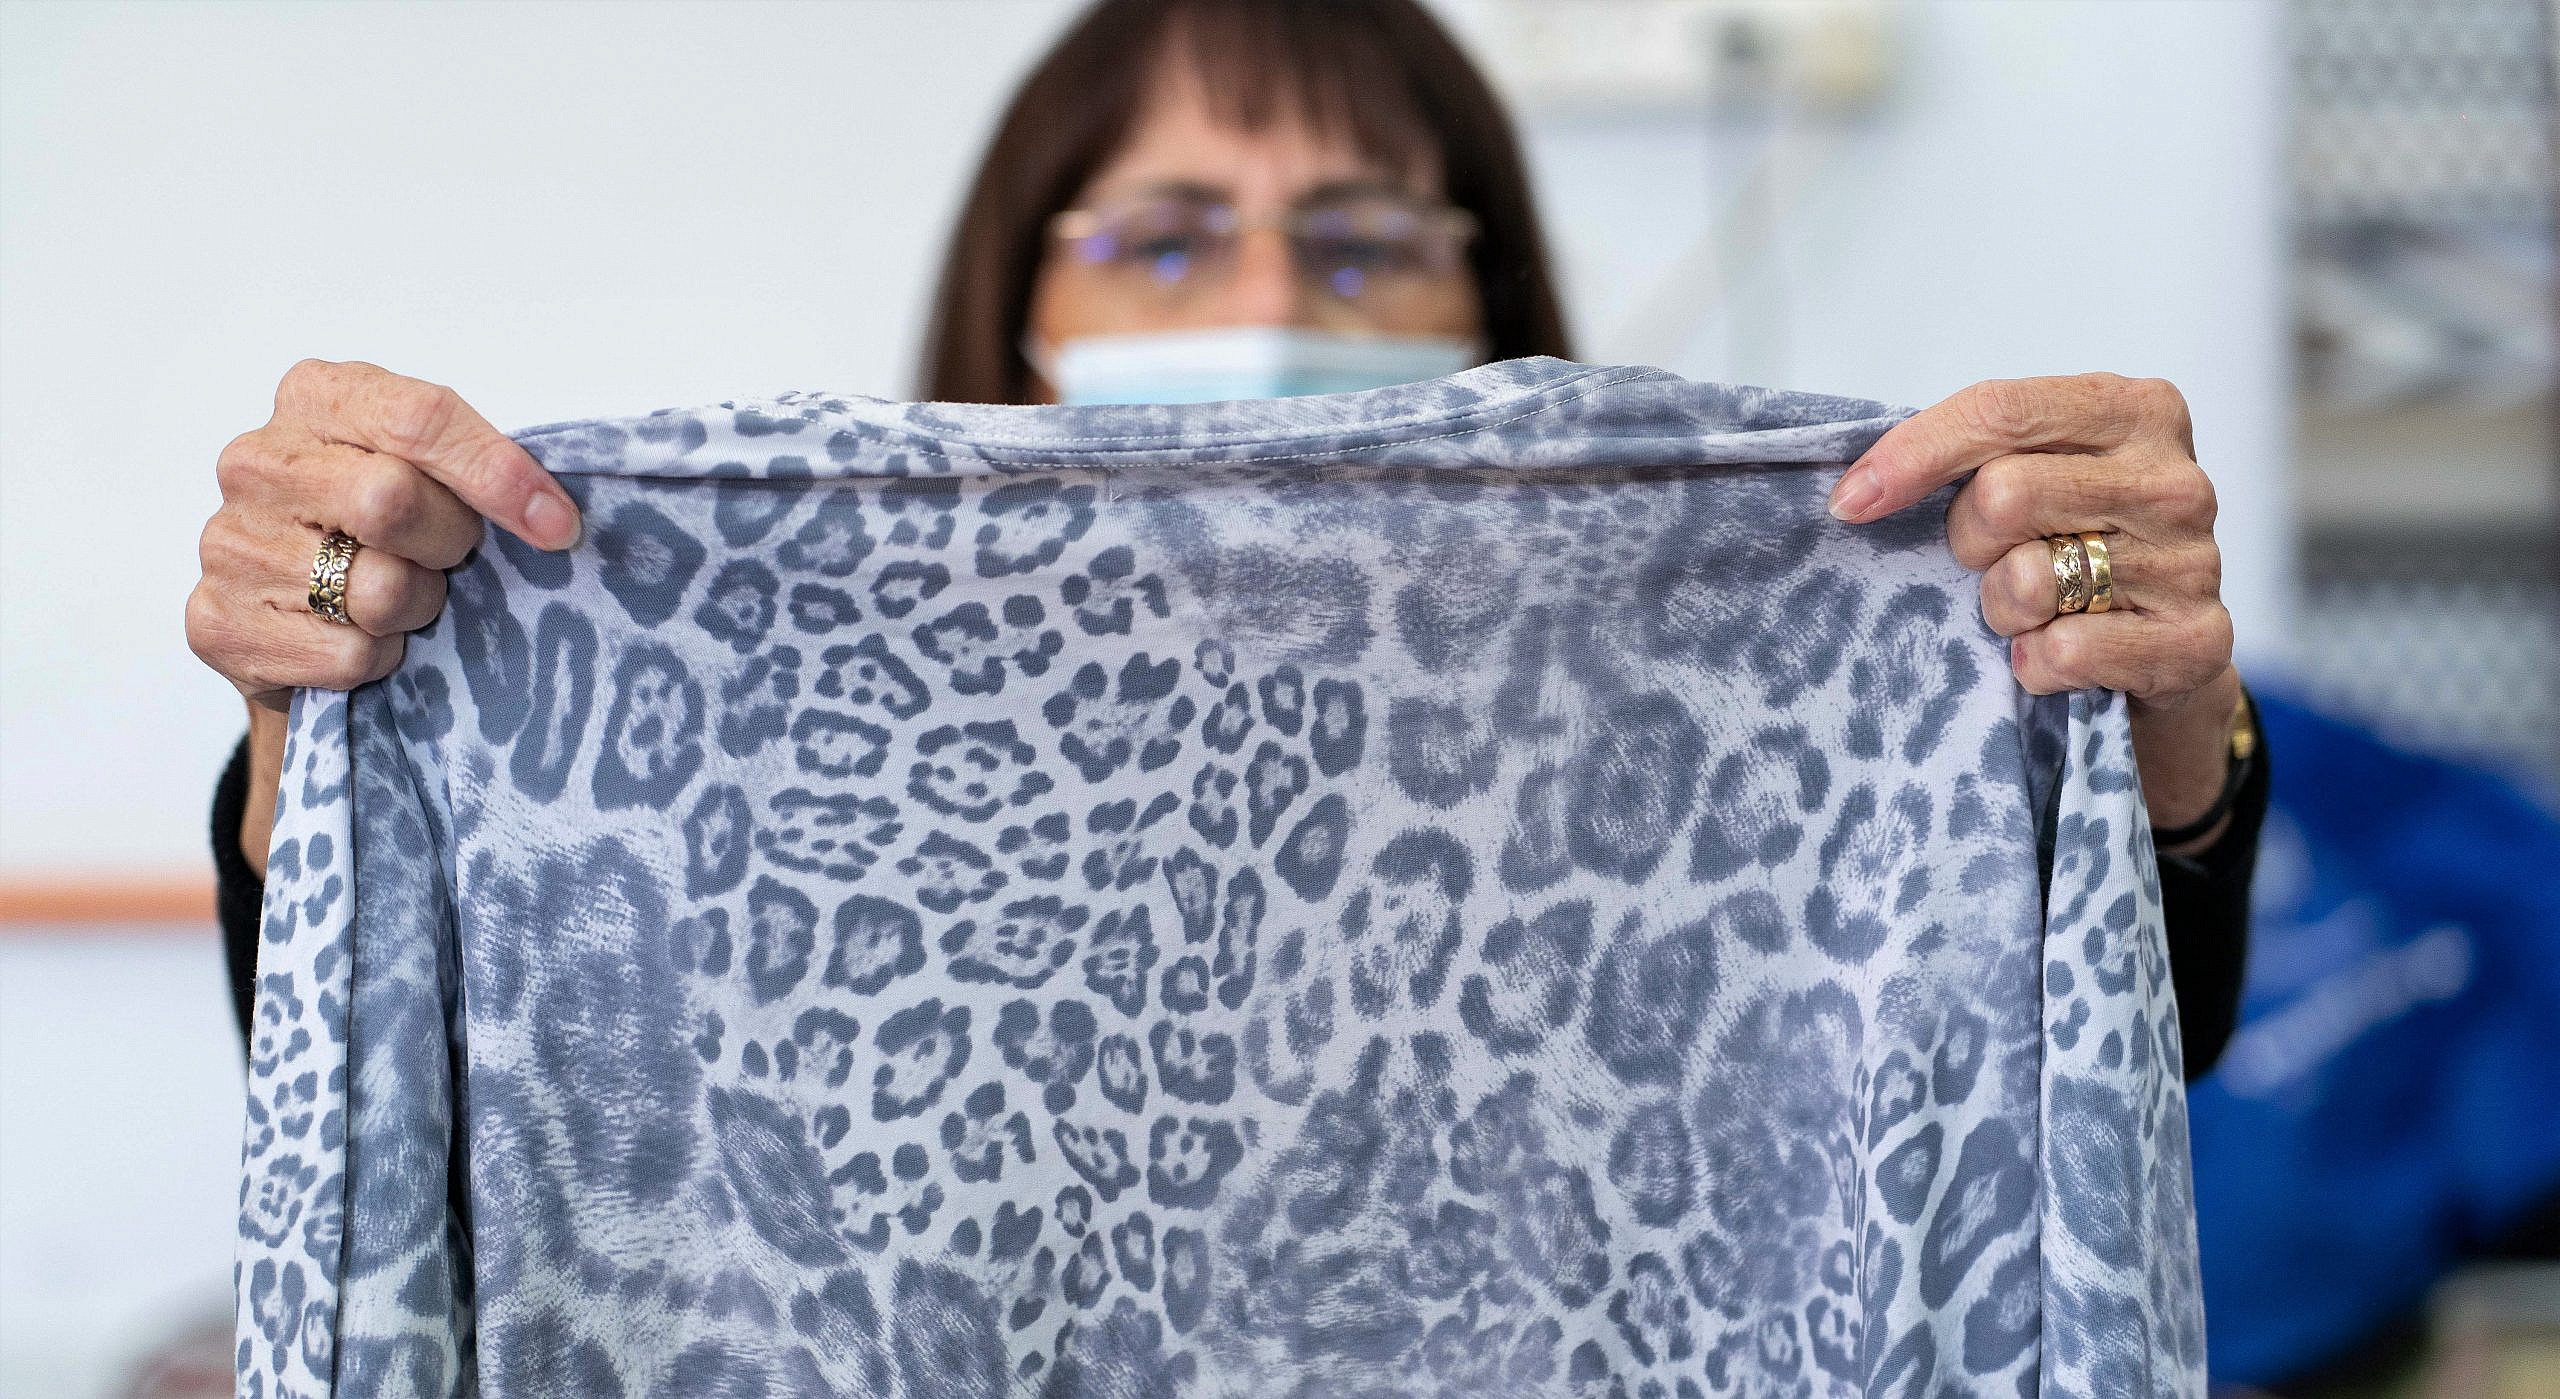 Israeli Company Launches Pilot Program To Help Solve Problem Of Textile Waste 2